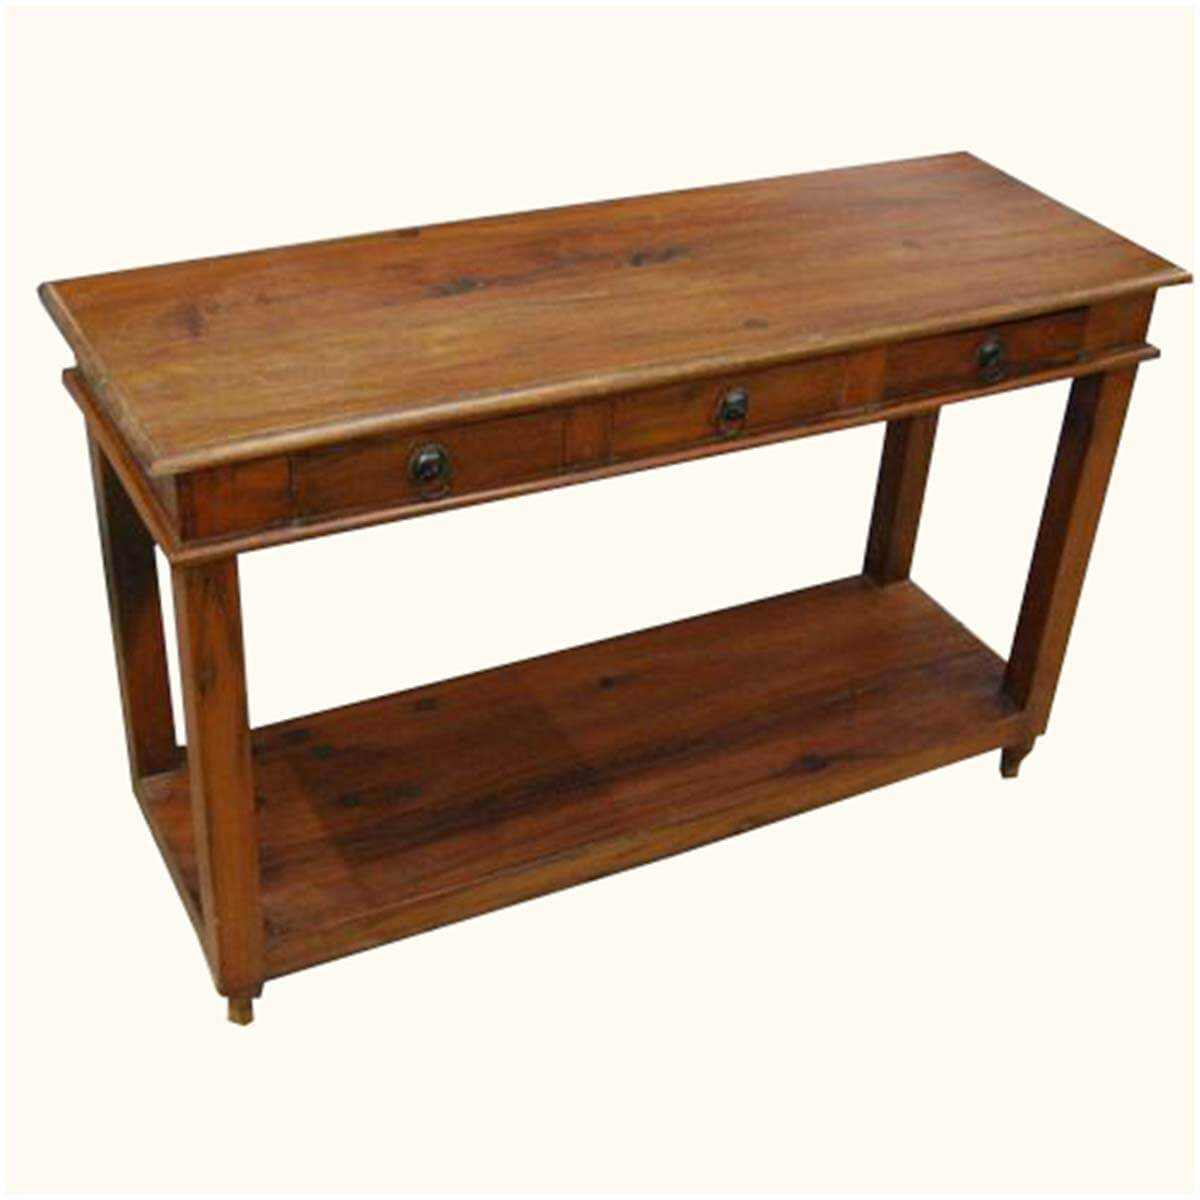 Foyer Console Images : Solid wood entry sofa hall console foyer table w drawers